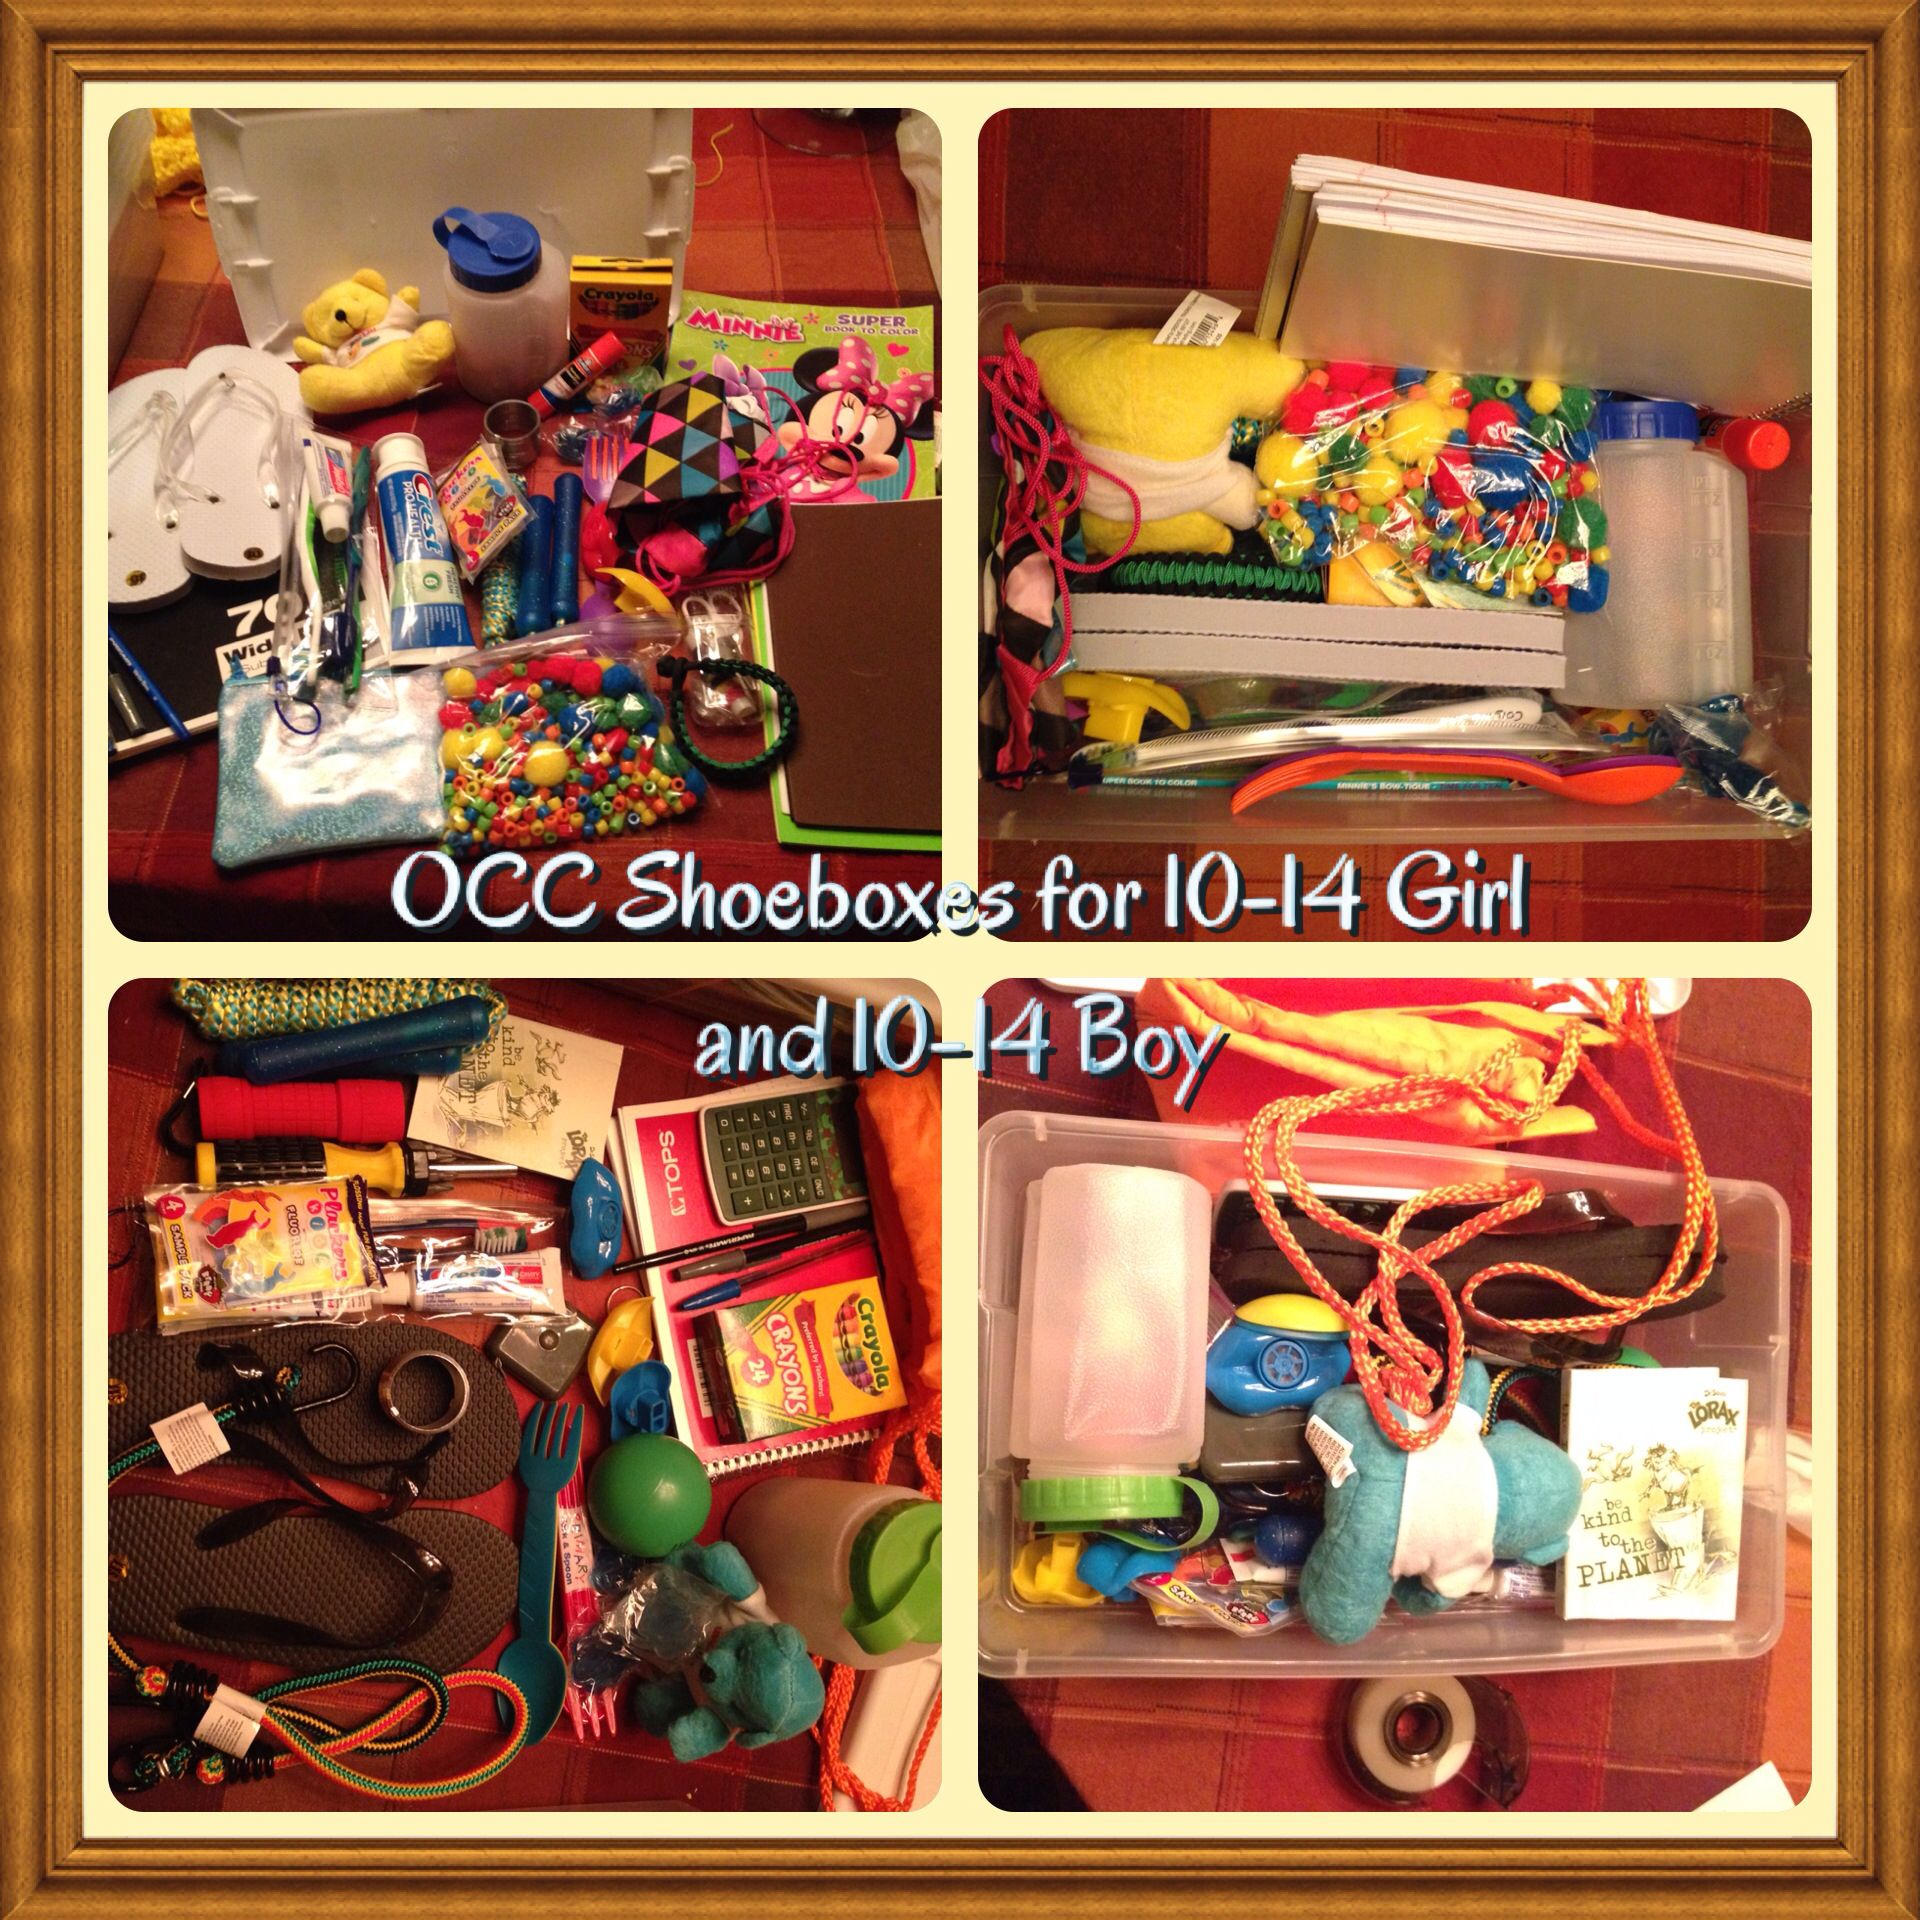 occ shoebox for 10 14 girl and boy just 2 of the 7 packed. Black Bedroom Furniture Sets. Home Design Ideas